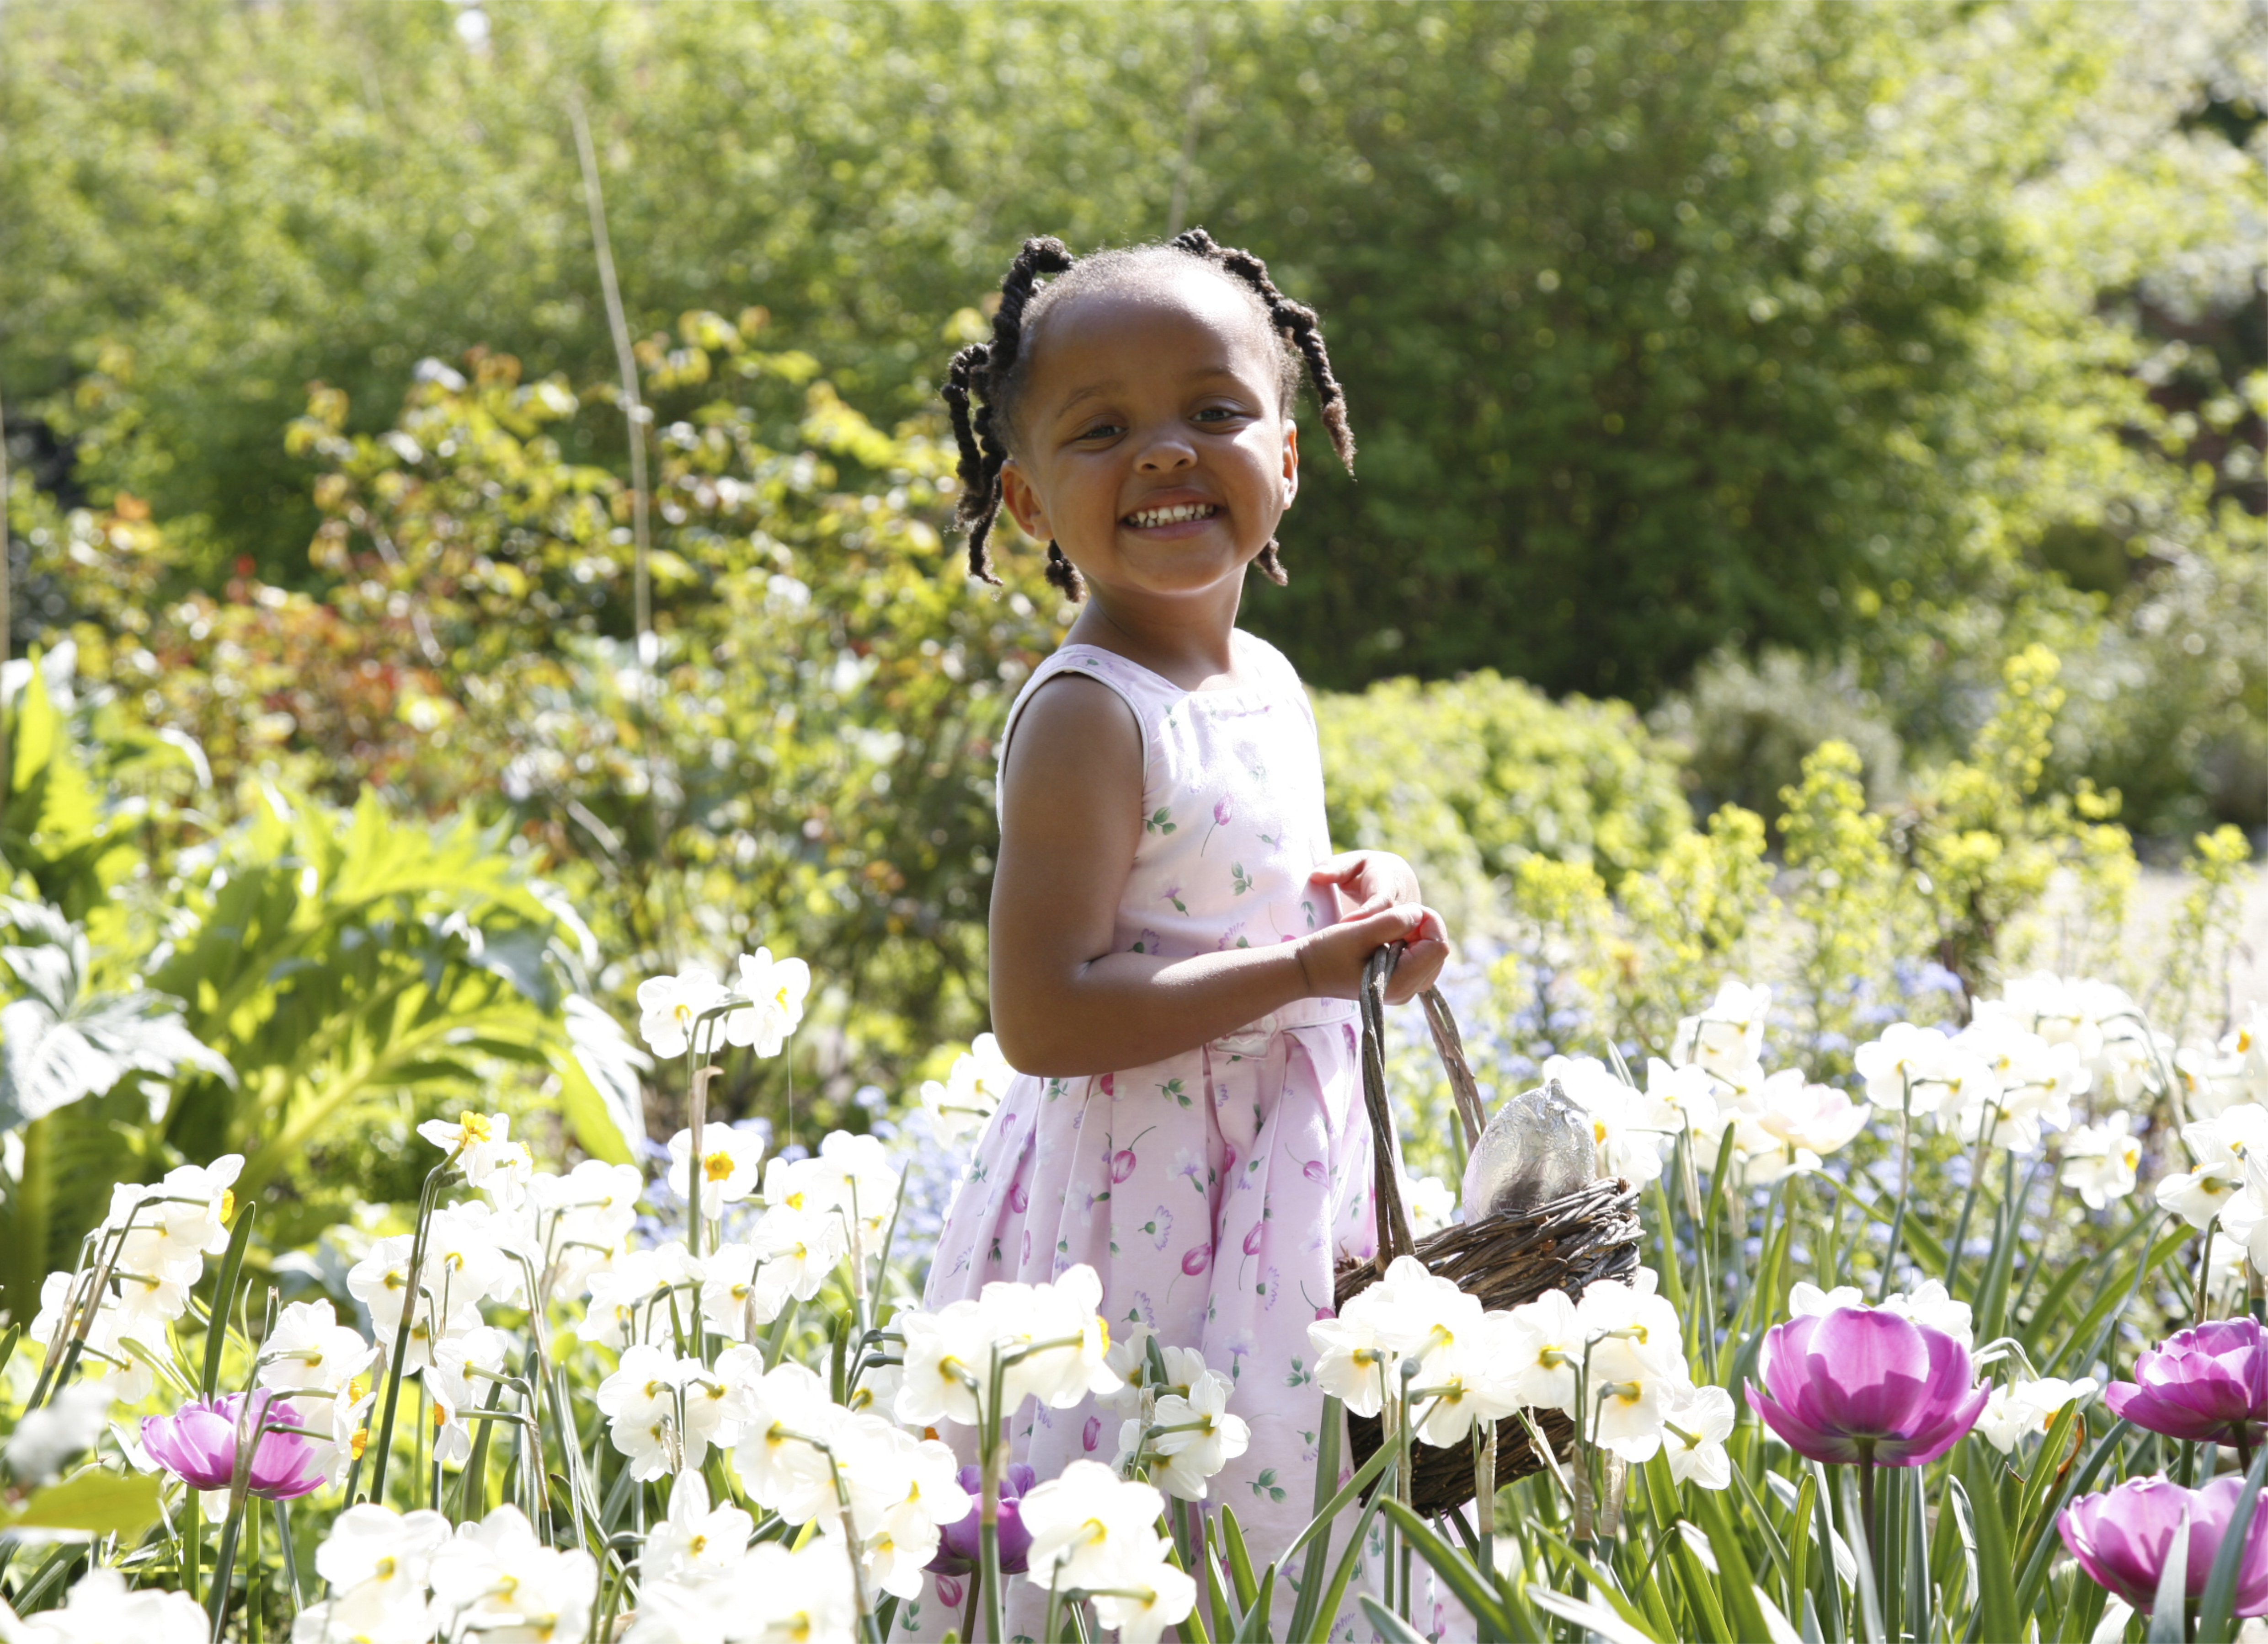 A little smiling girl with an Easter basket standing in a garden